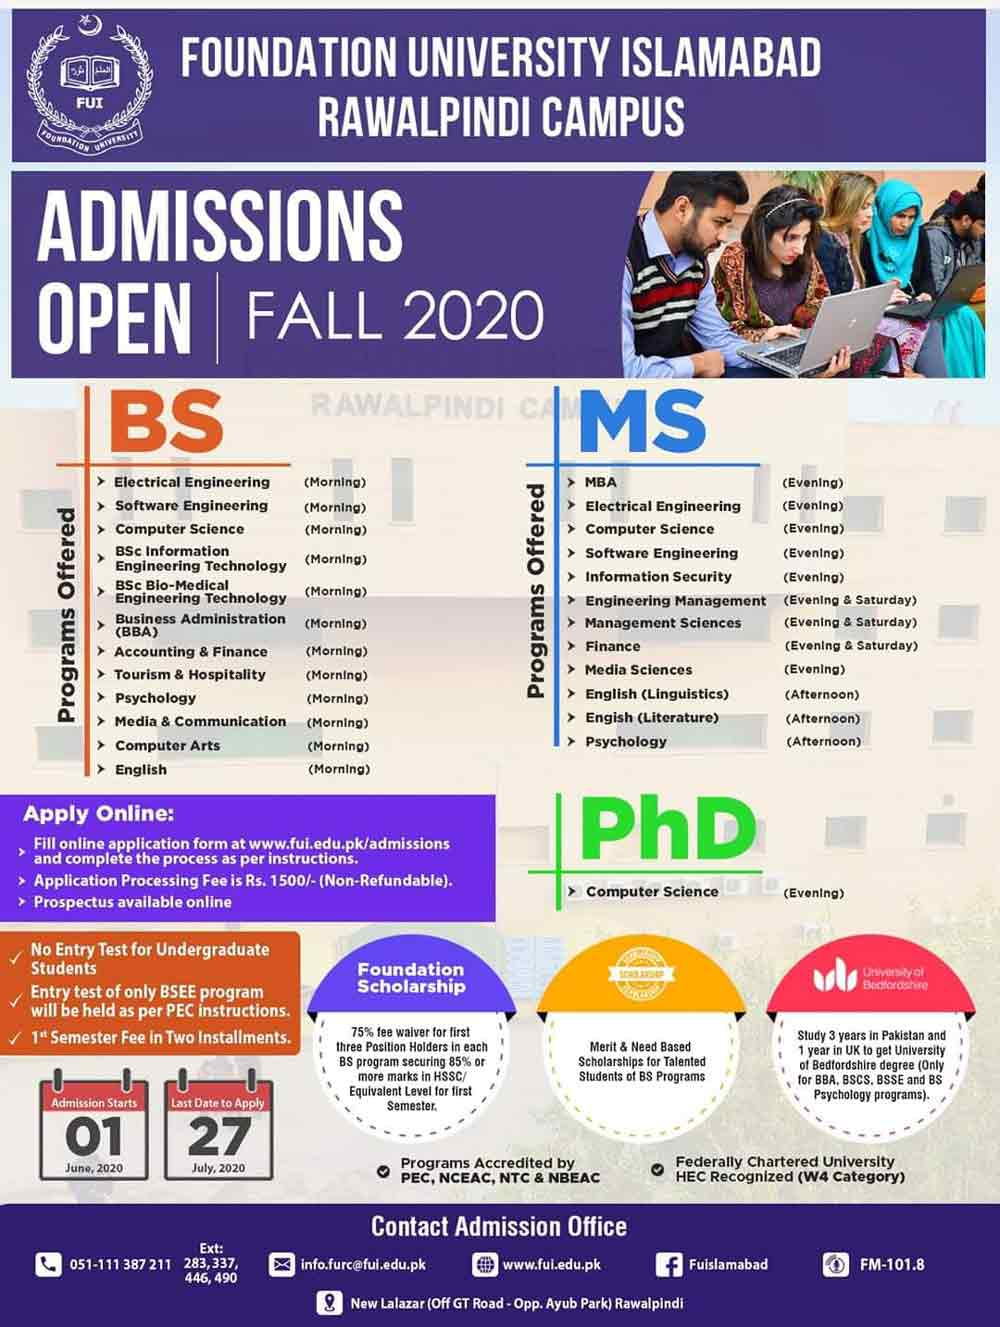 Foundation-University-Islamabad-Admissions-2020